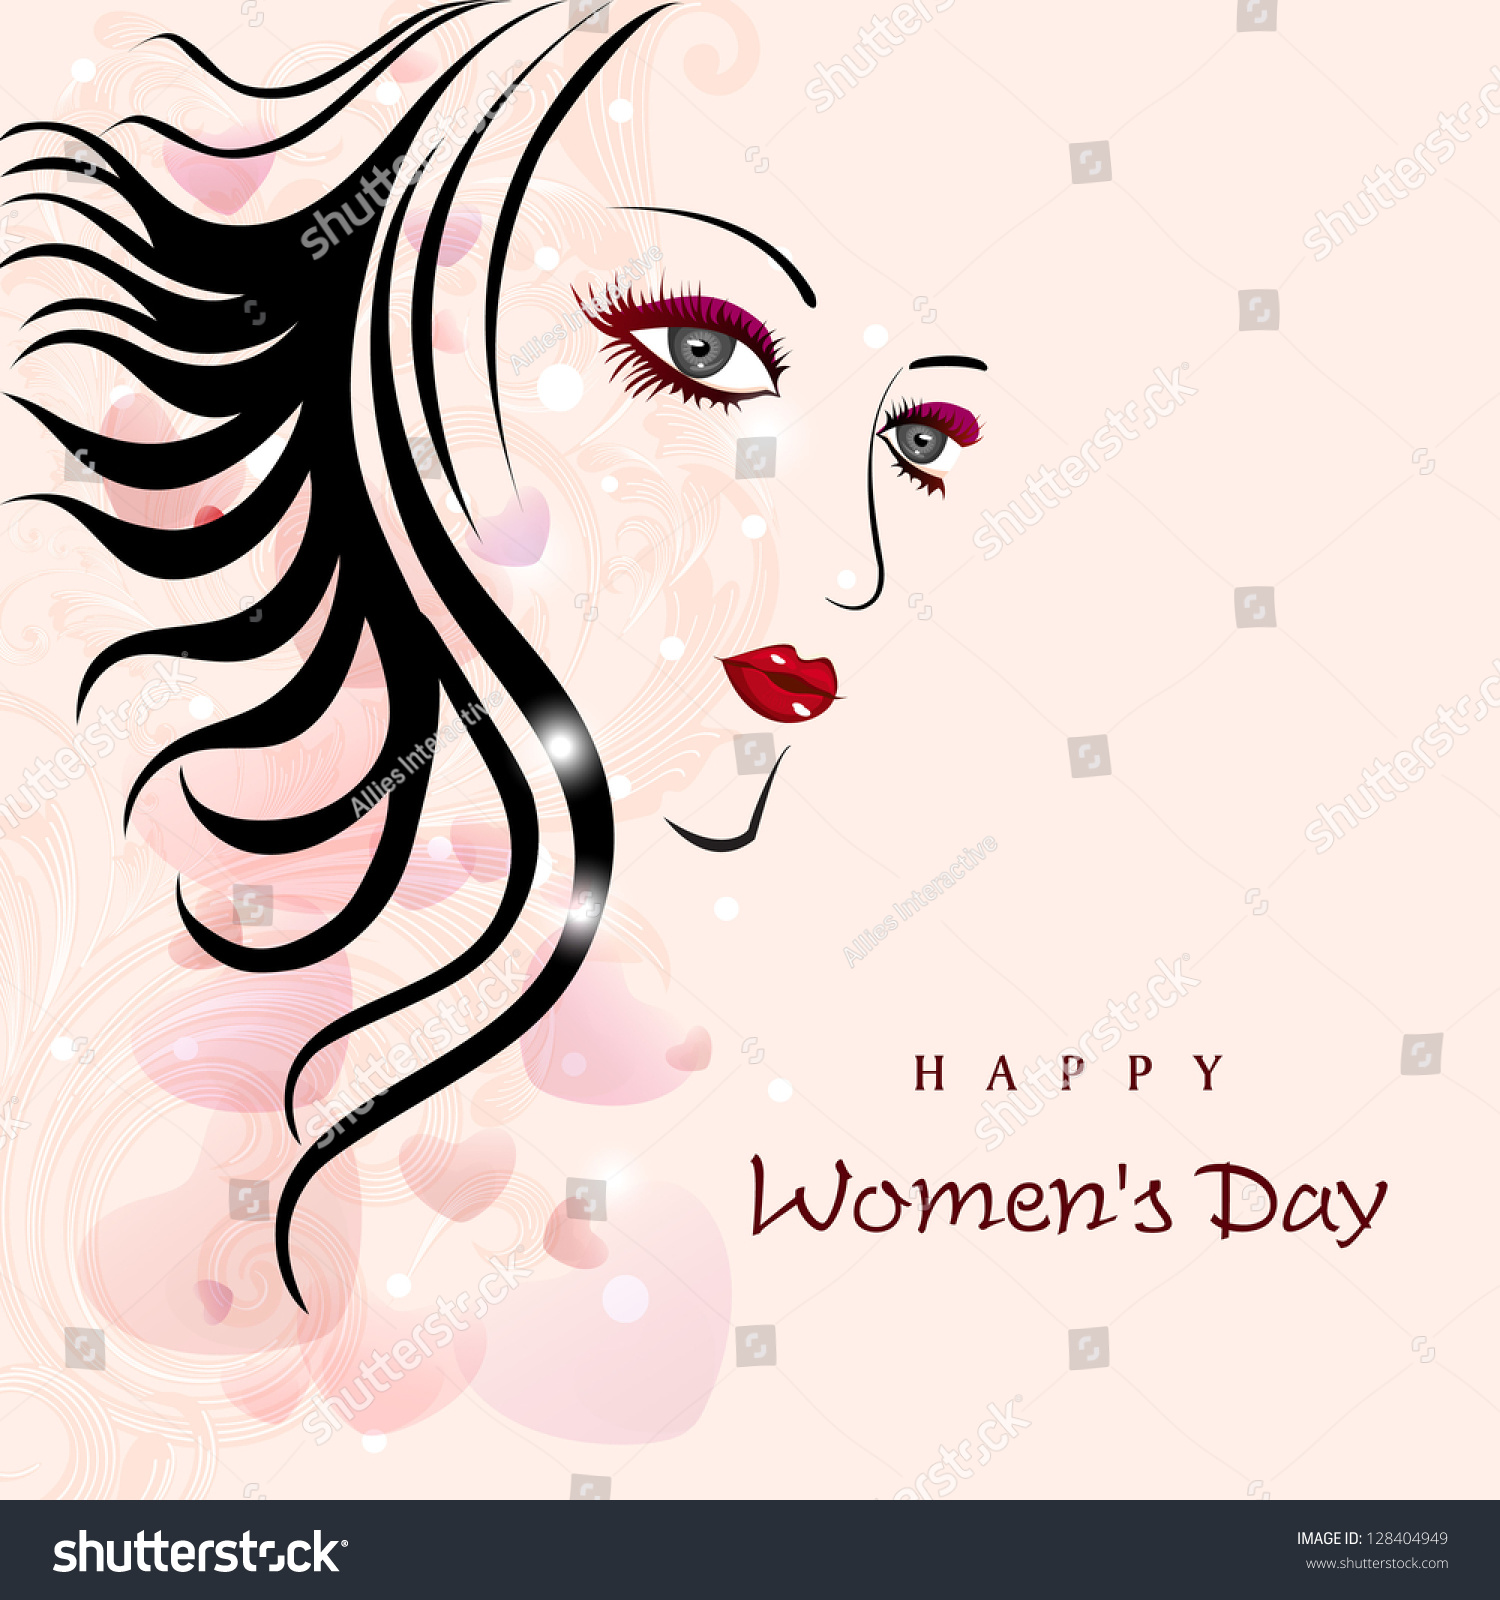 Sketch of a beautiful girl for happy womens day background